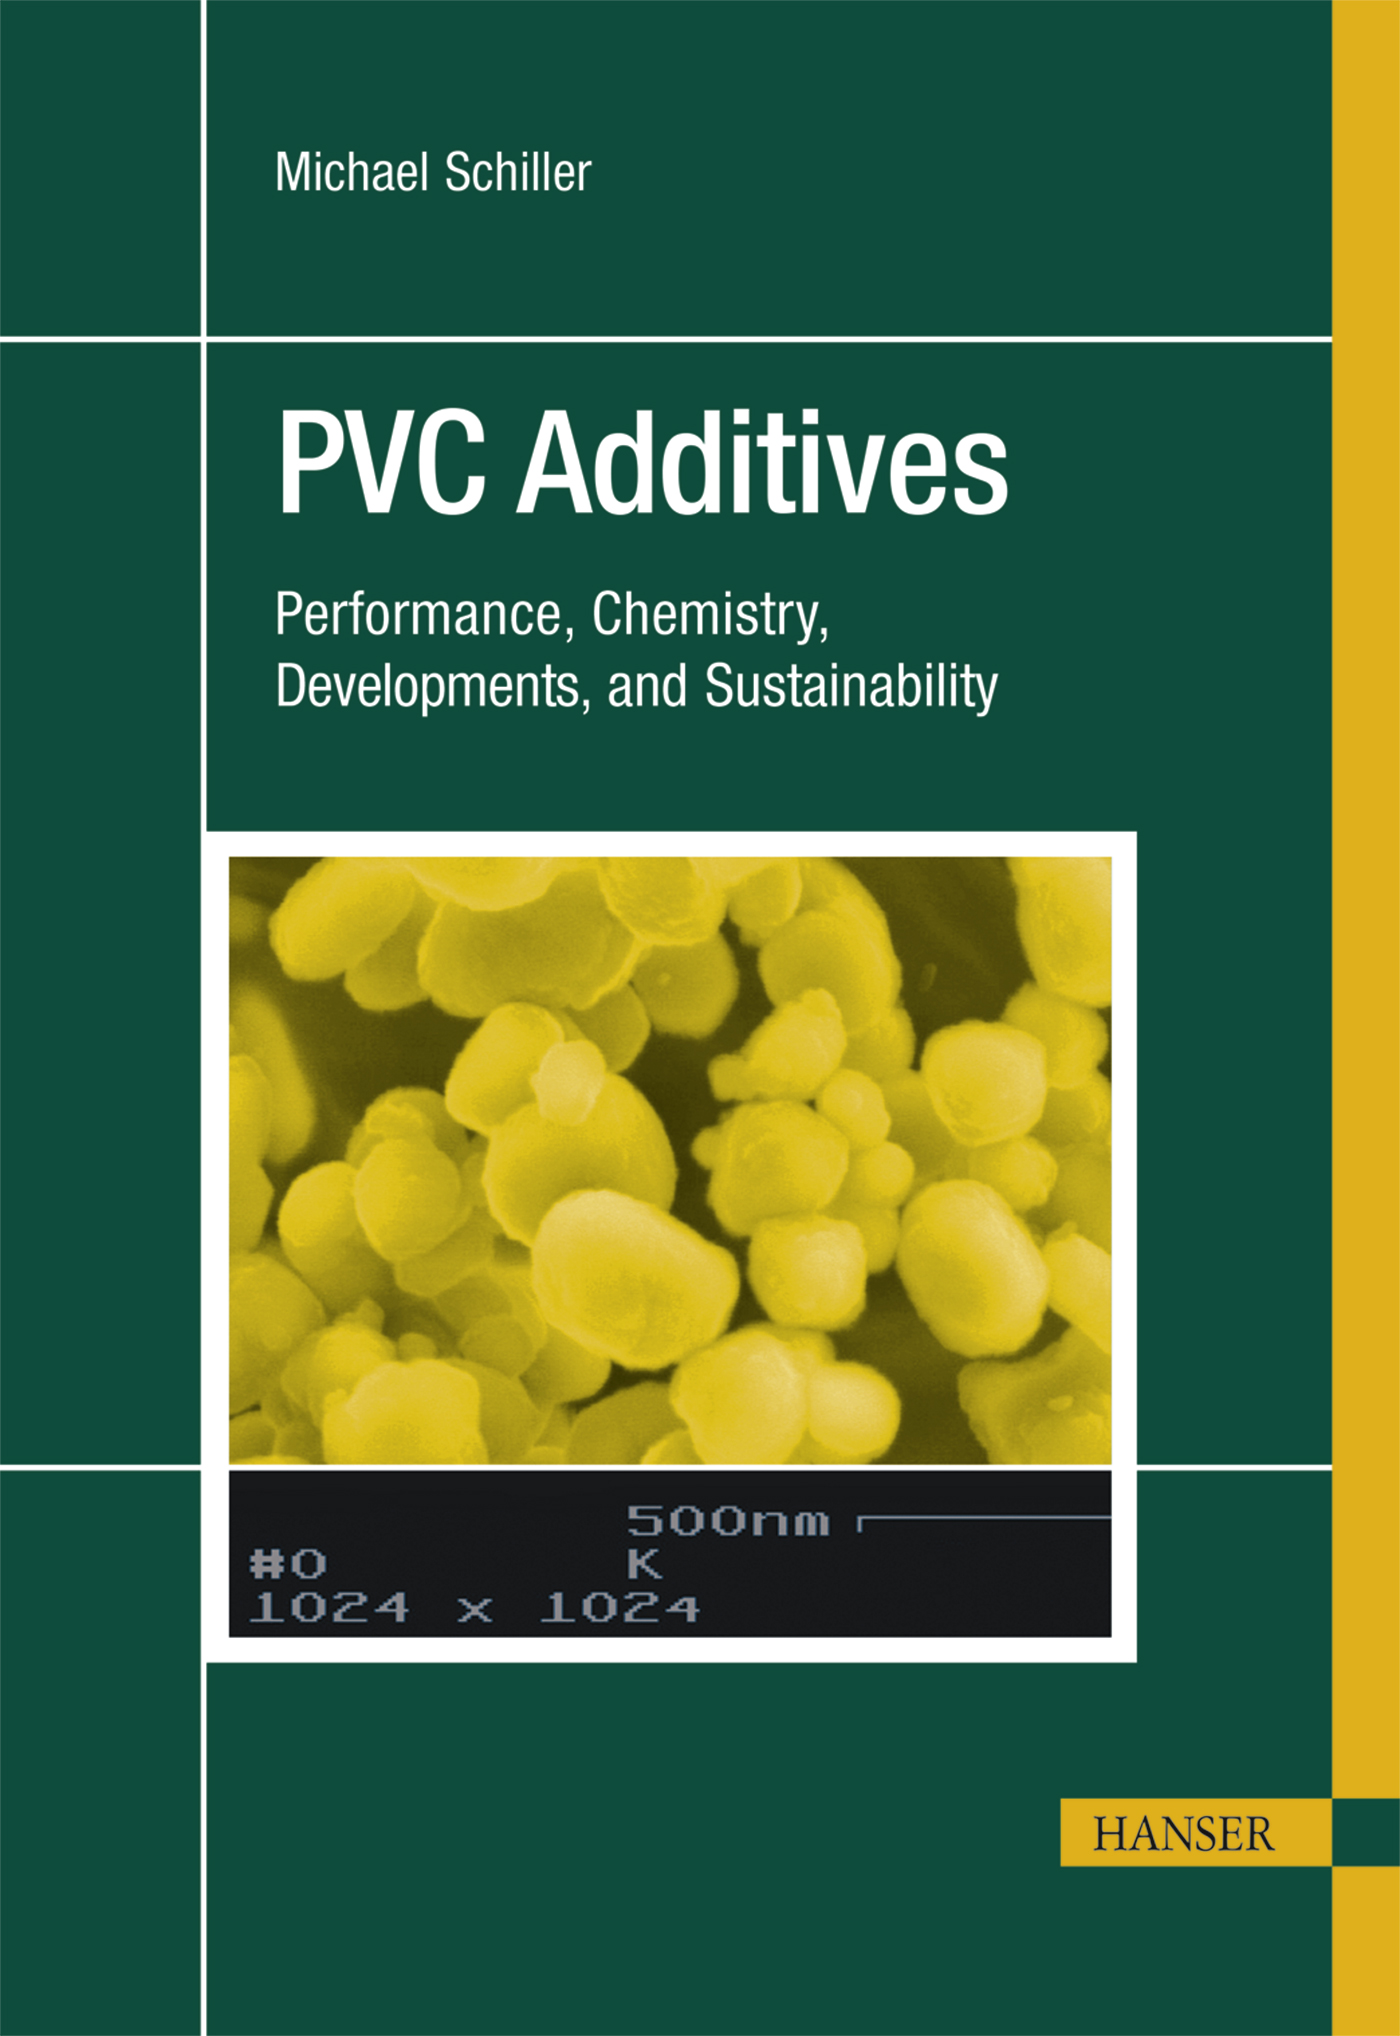 PVC Additives: Performance, Chemistry, Developments, and Sustainability